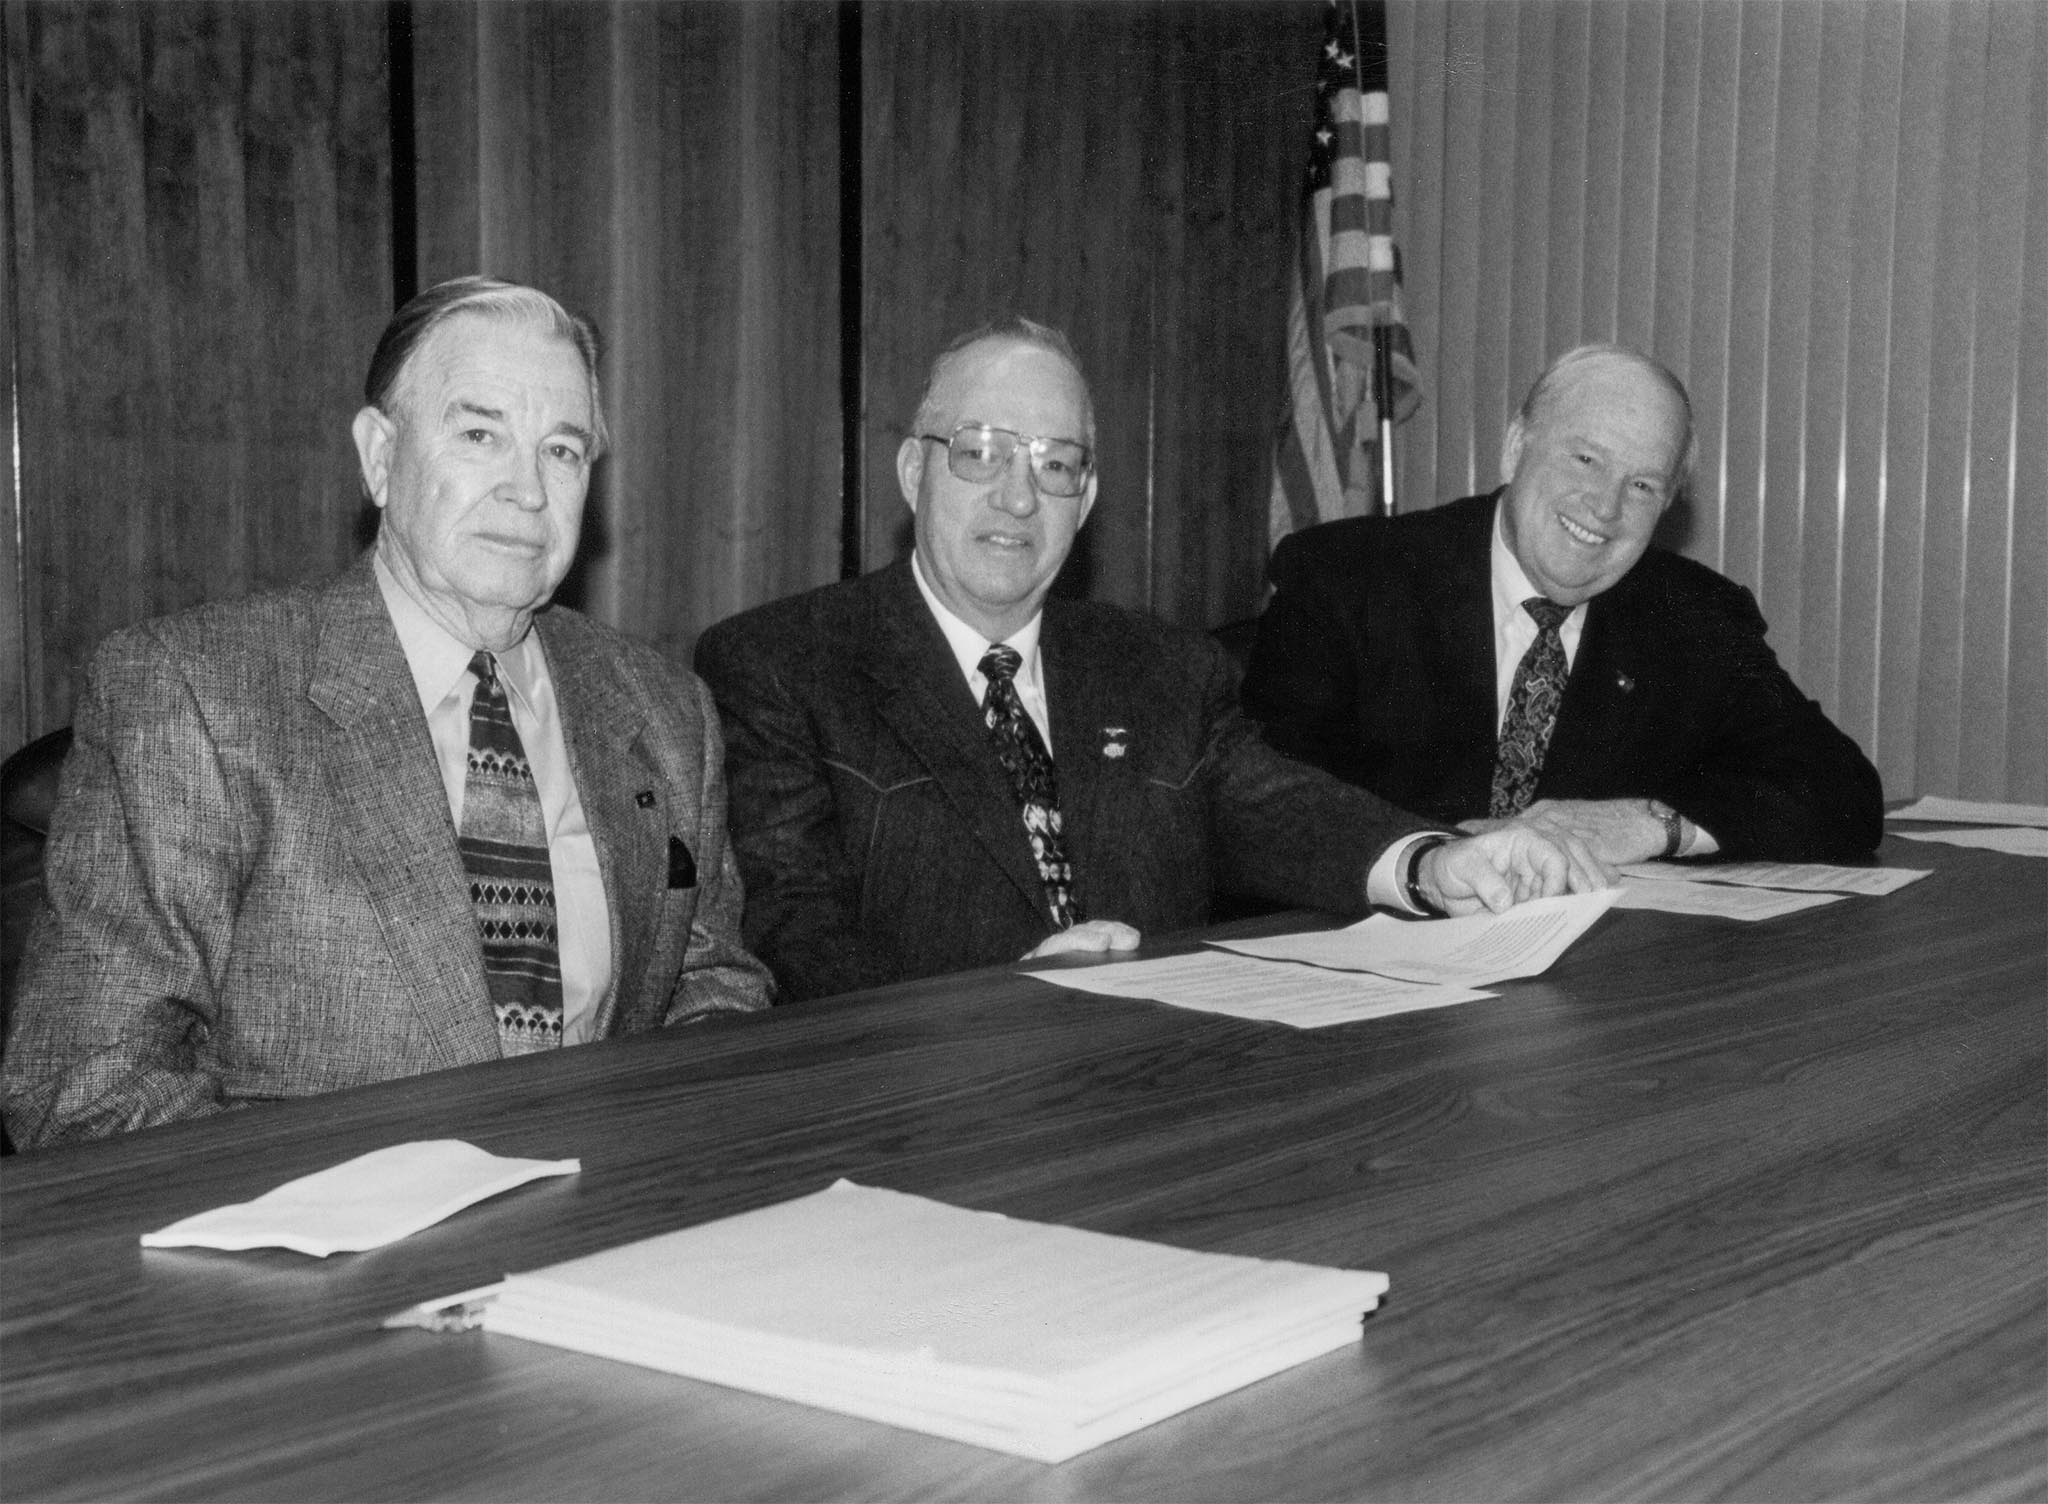 In 1998, presidents of the Oklahoma Farmers Union, Oklahoma Farm Bureau and the Oklahoma Cattlemen's Association joined leaders of other state organizations to create the Oklahoma Agriculture Roundtable. The group united forces on several agriculture industry issues on the table for the 1998 legislative session, such as the wheat checkoff, estate taxes, livestock liability and more. This photo was taken as OKFB President Jack M. Givens (left), OCA President Stanley Barby (center), and OFU President Phil Klutts prepared to open the Oklahoma Agriculture Roundtable.